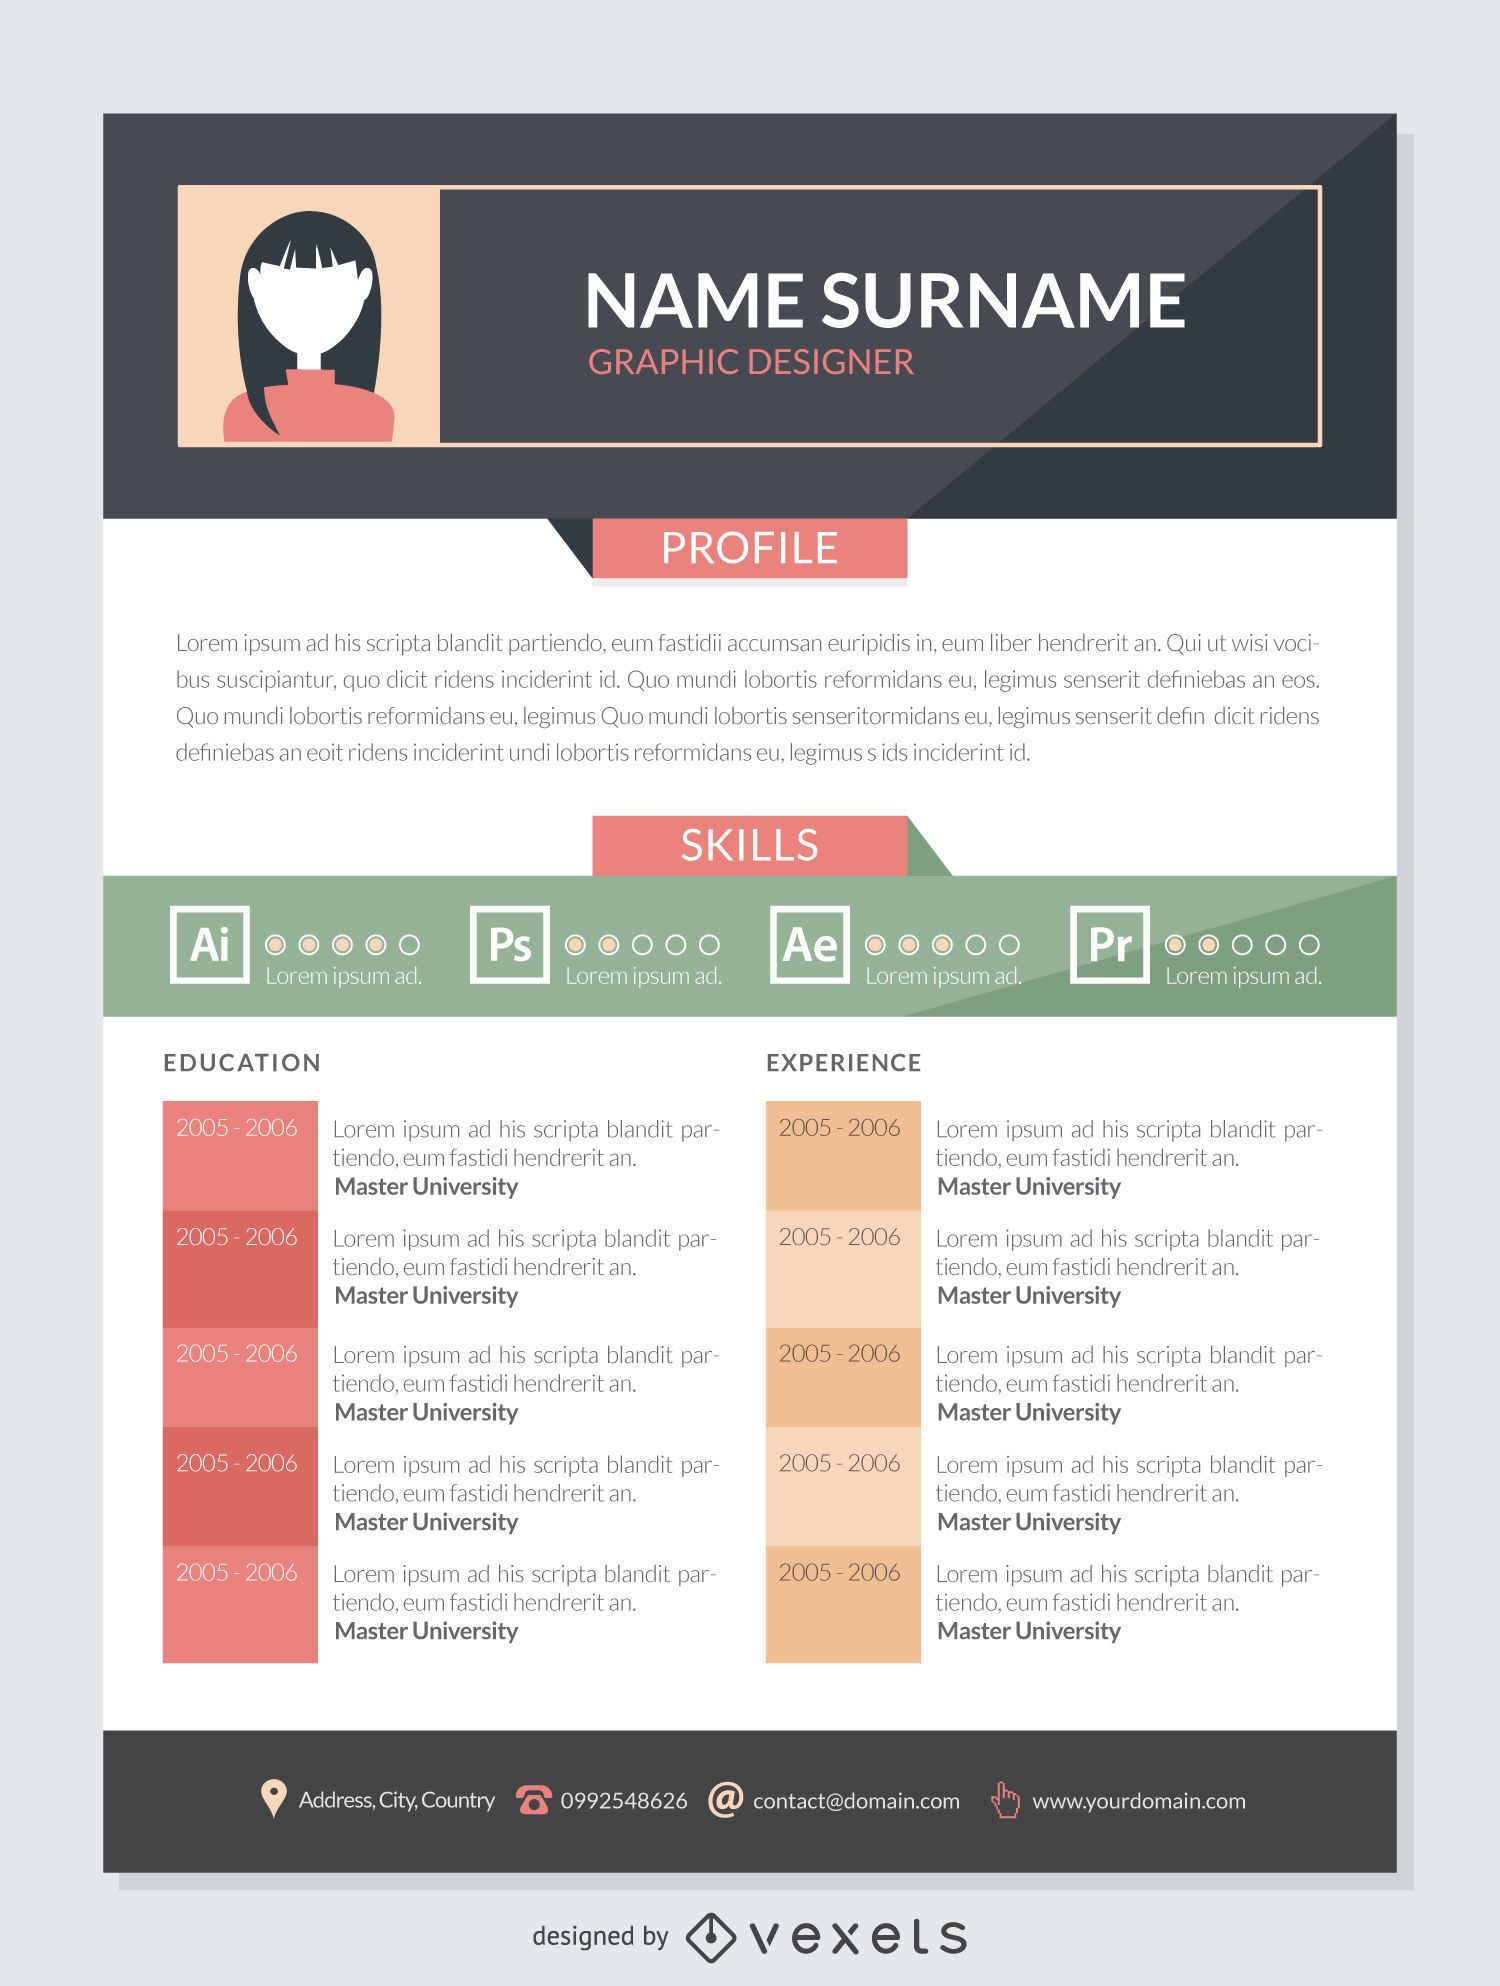 Designer Resume graphic designer resume Graphic Designer Resume Mockup Template